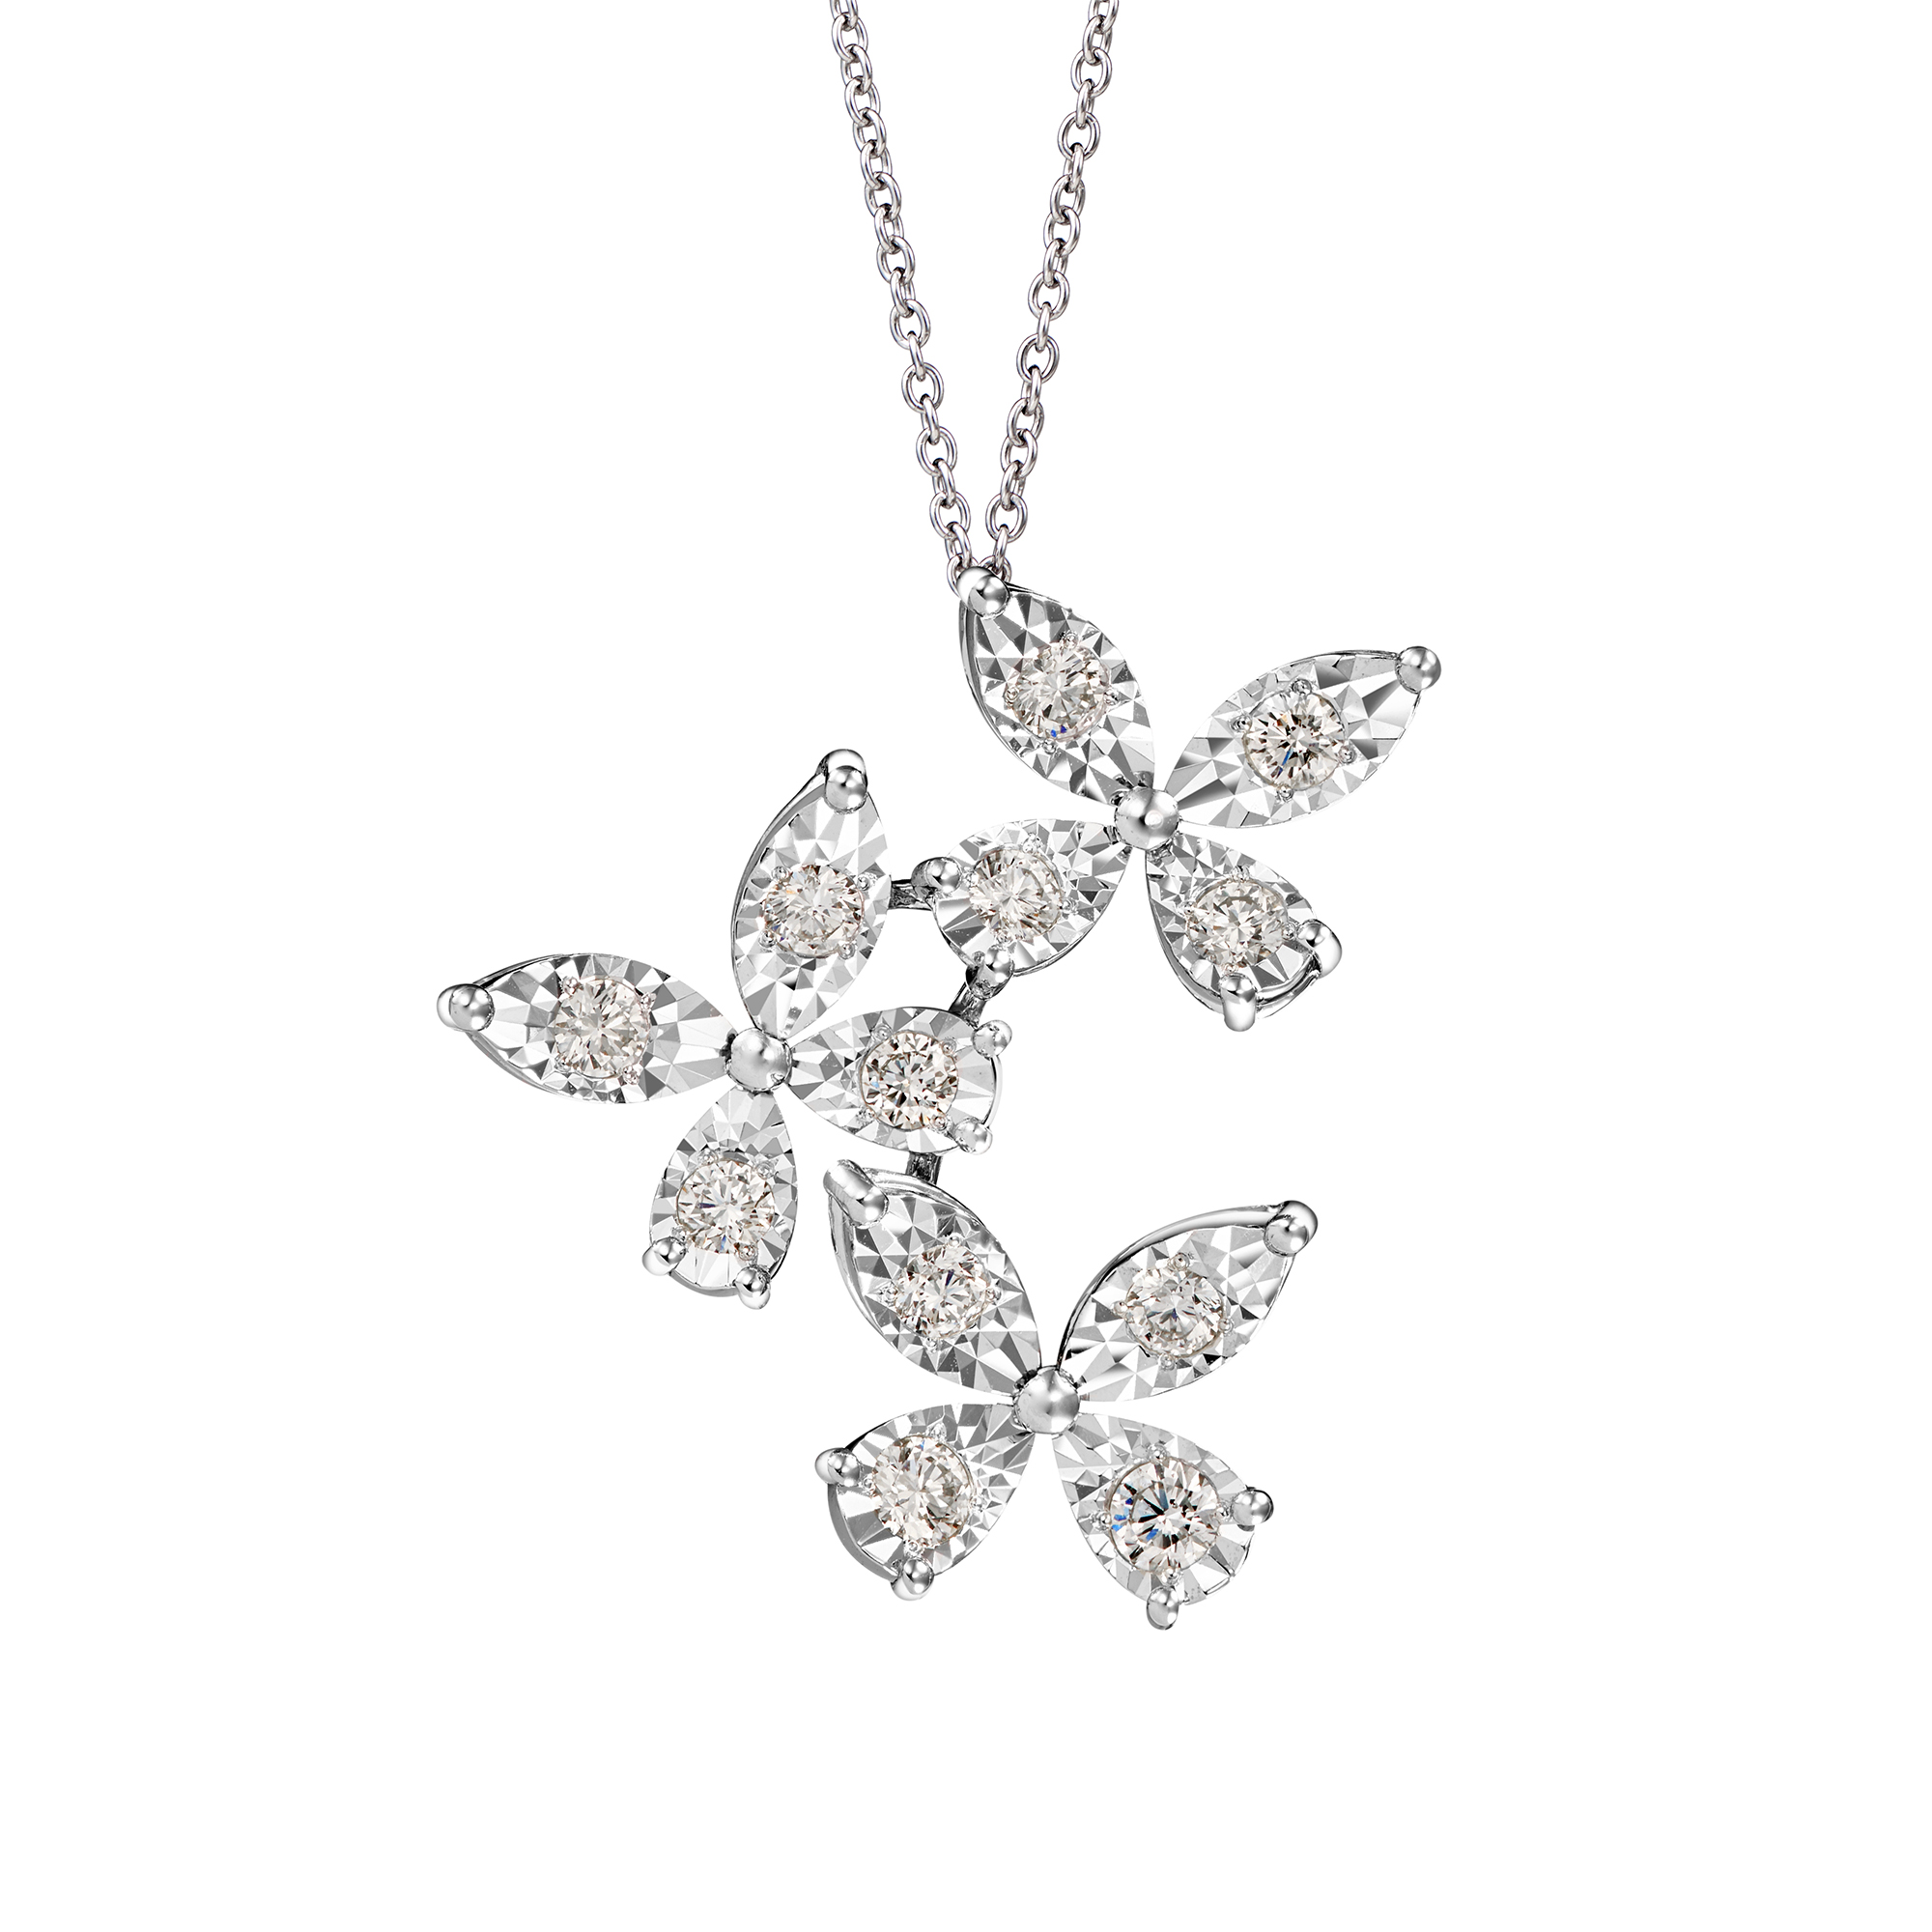 Flutter Diamond Necklace